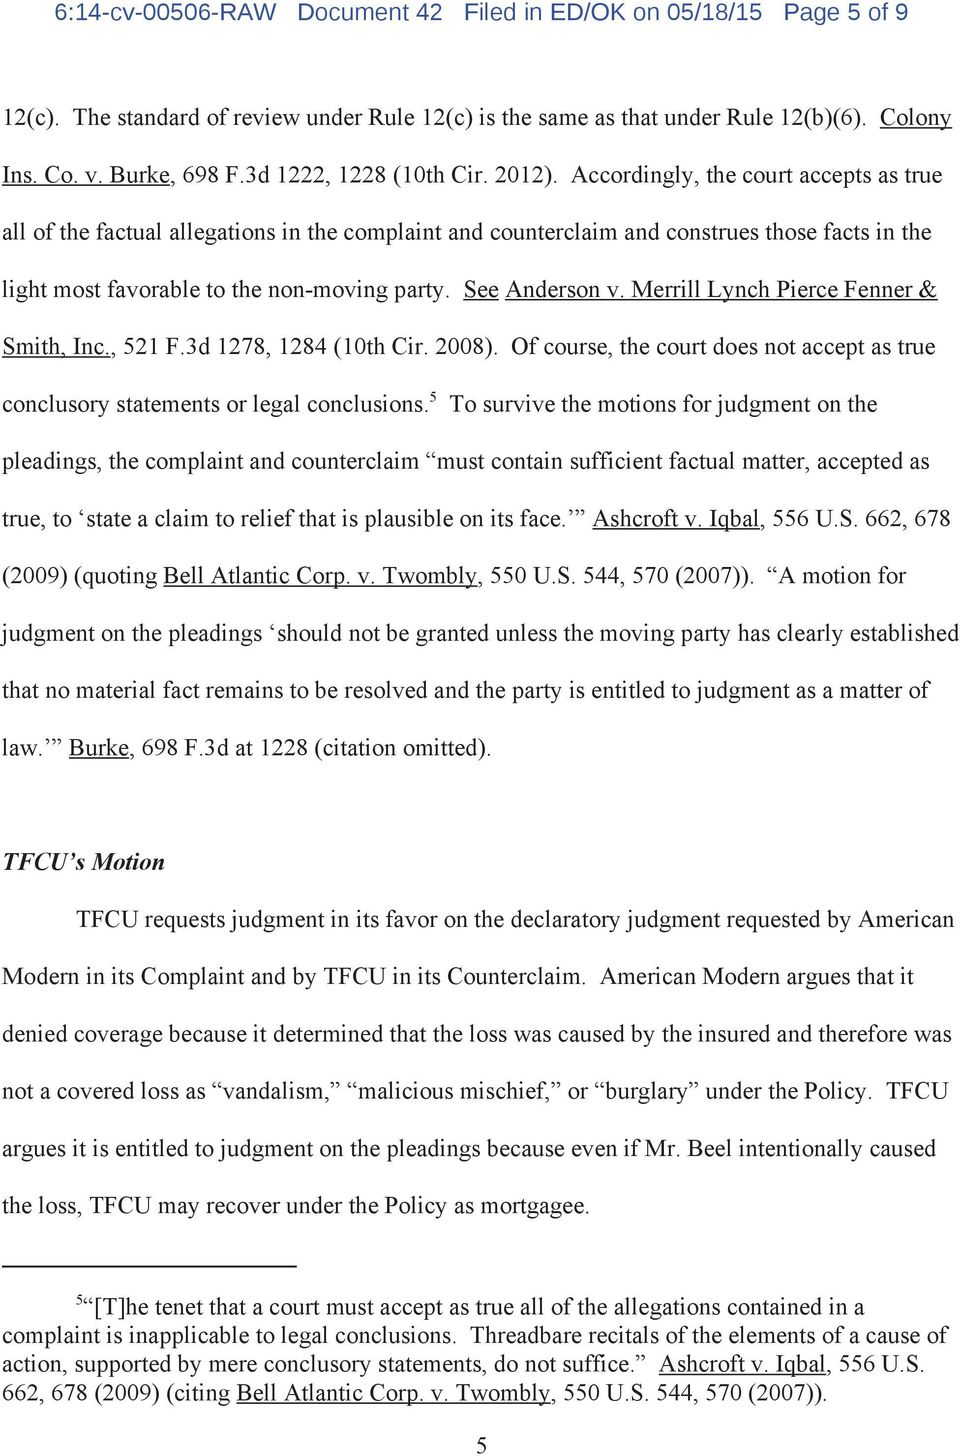 Accordingly, the court accepts as true all of the factual allegations in the complaint and counterclaim and construes those facts in the light most favorable to the non-moving party. See Anderson v.